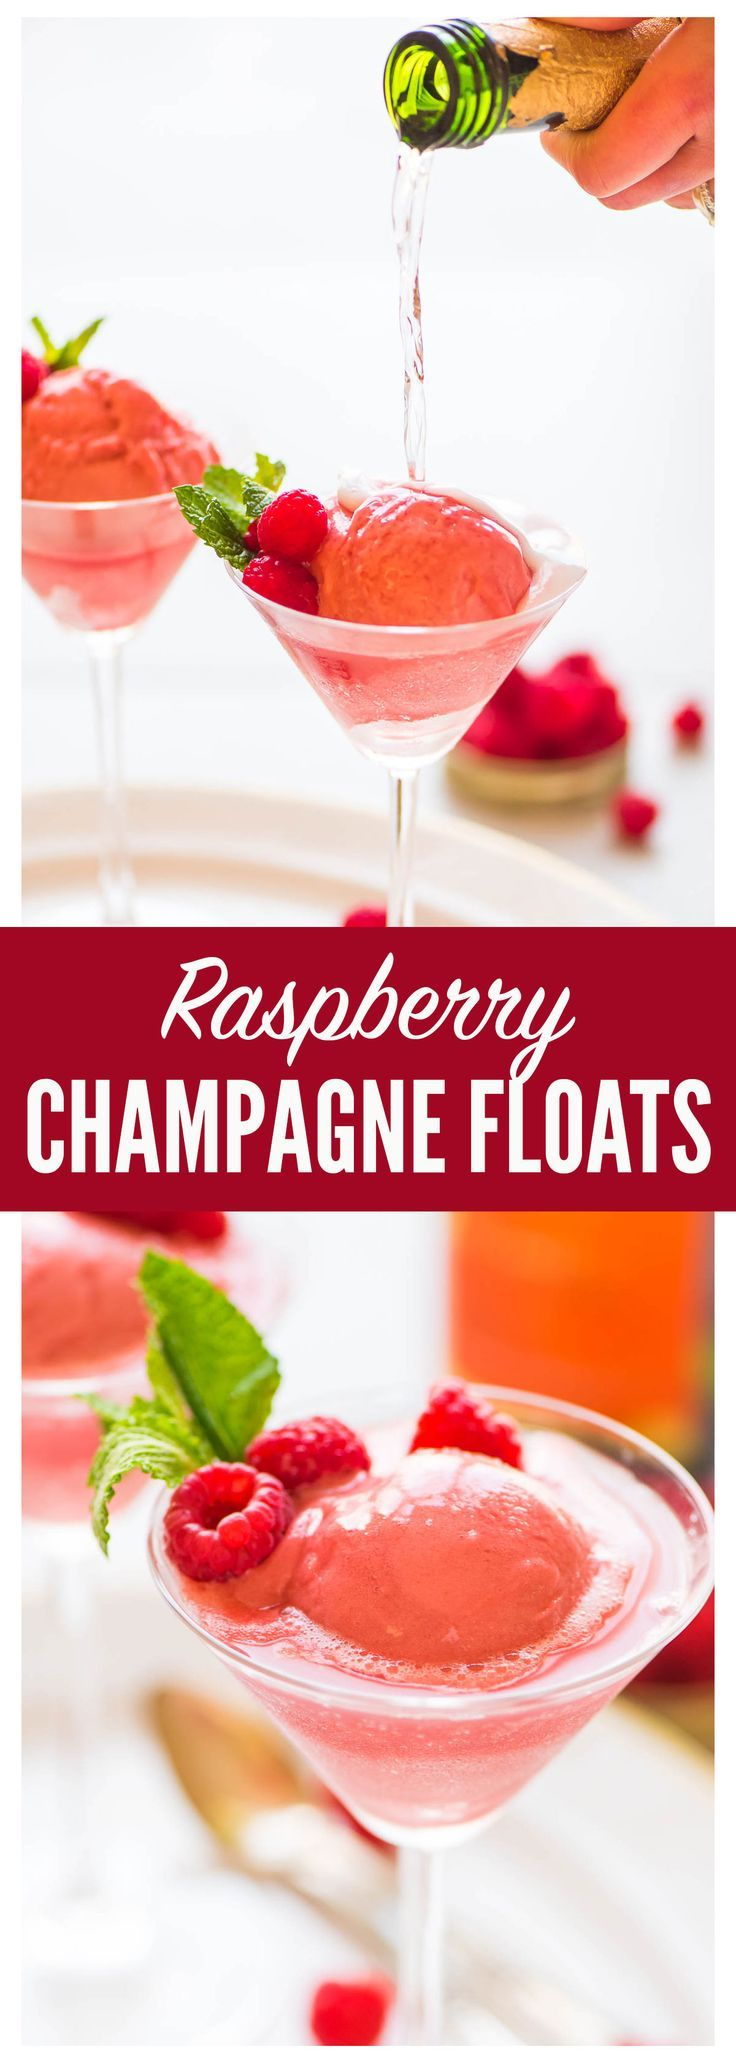 Romantic Valentines drink idea for two - Raspberry Champagne Floats. Recipe at wellplated.com   @wellplated